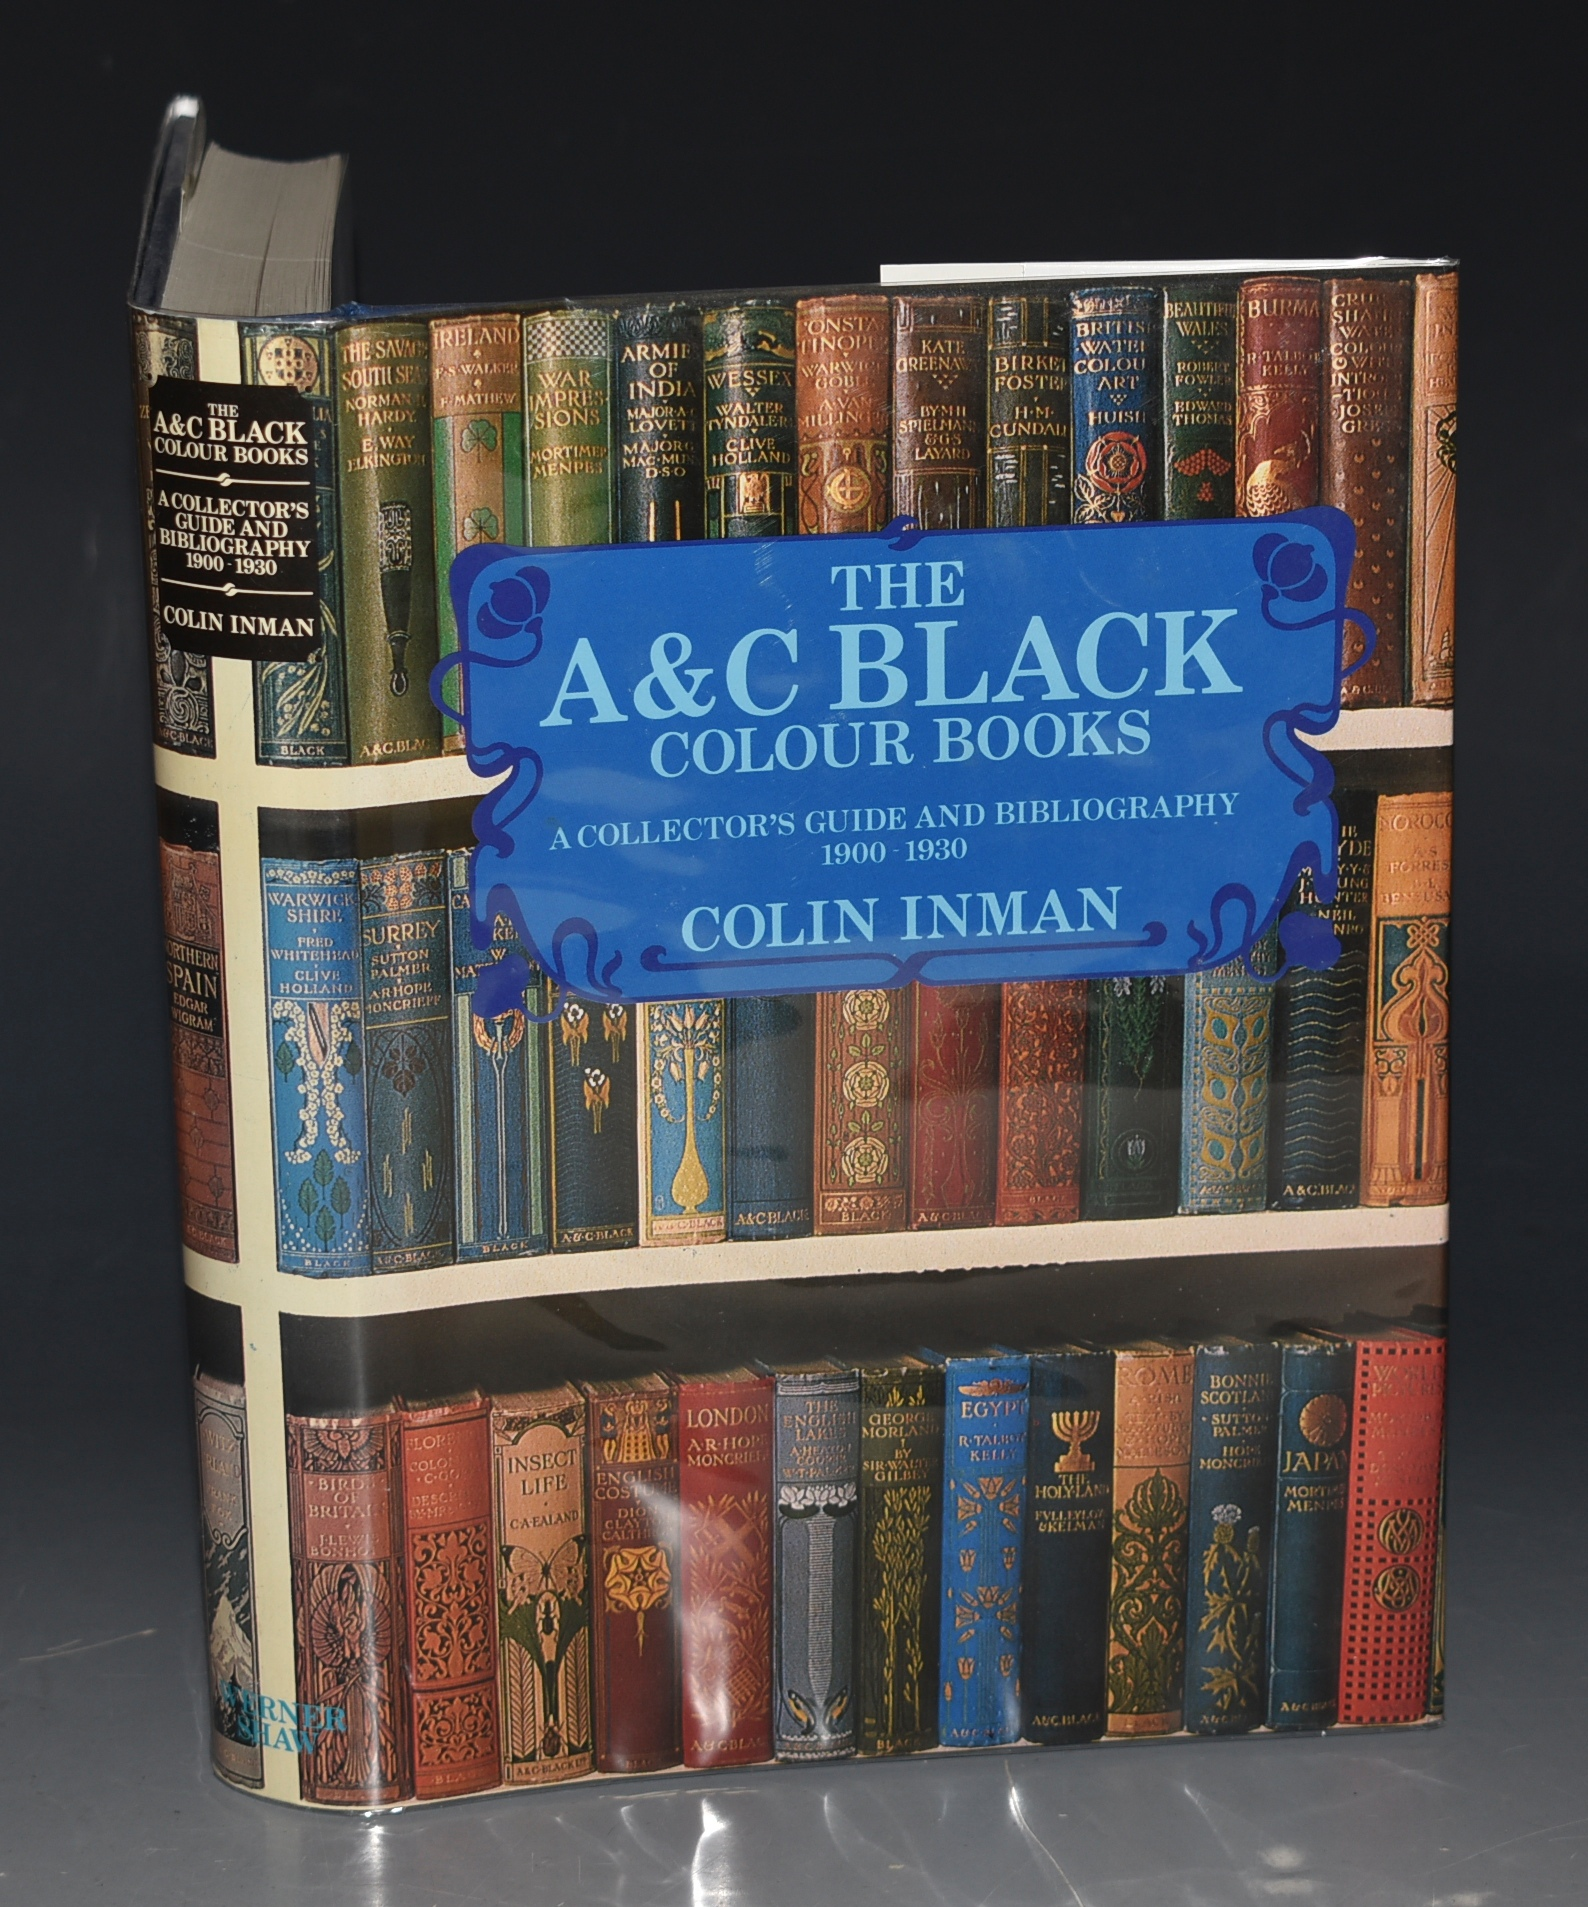 Image for The A. & C. Black Colour Books. A Collector's Guide and Bibliography 1900 - 1930.